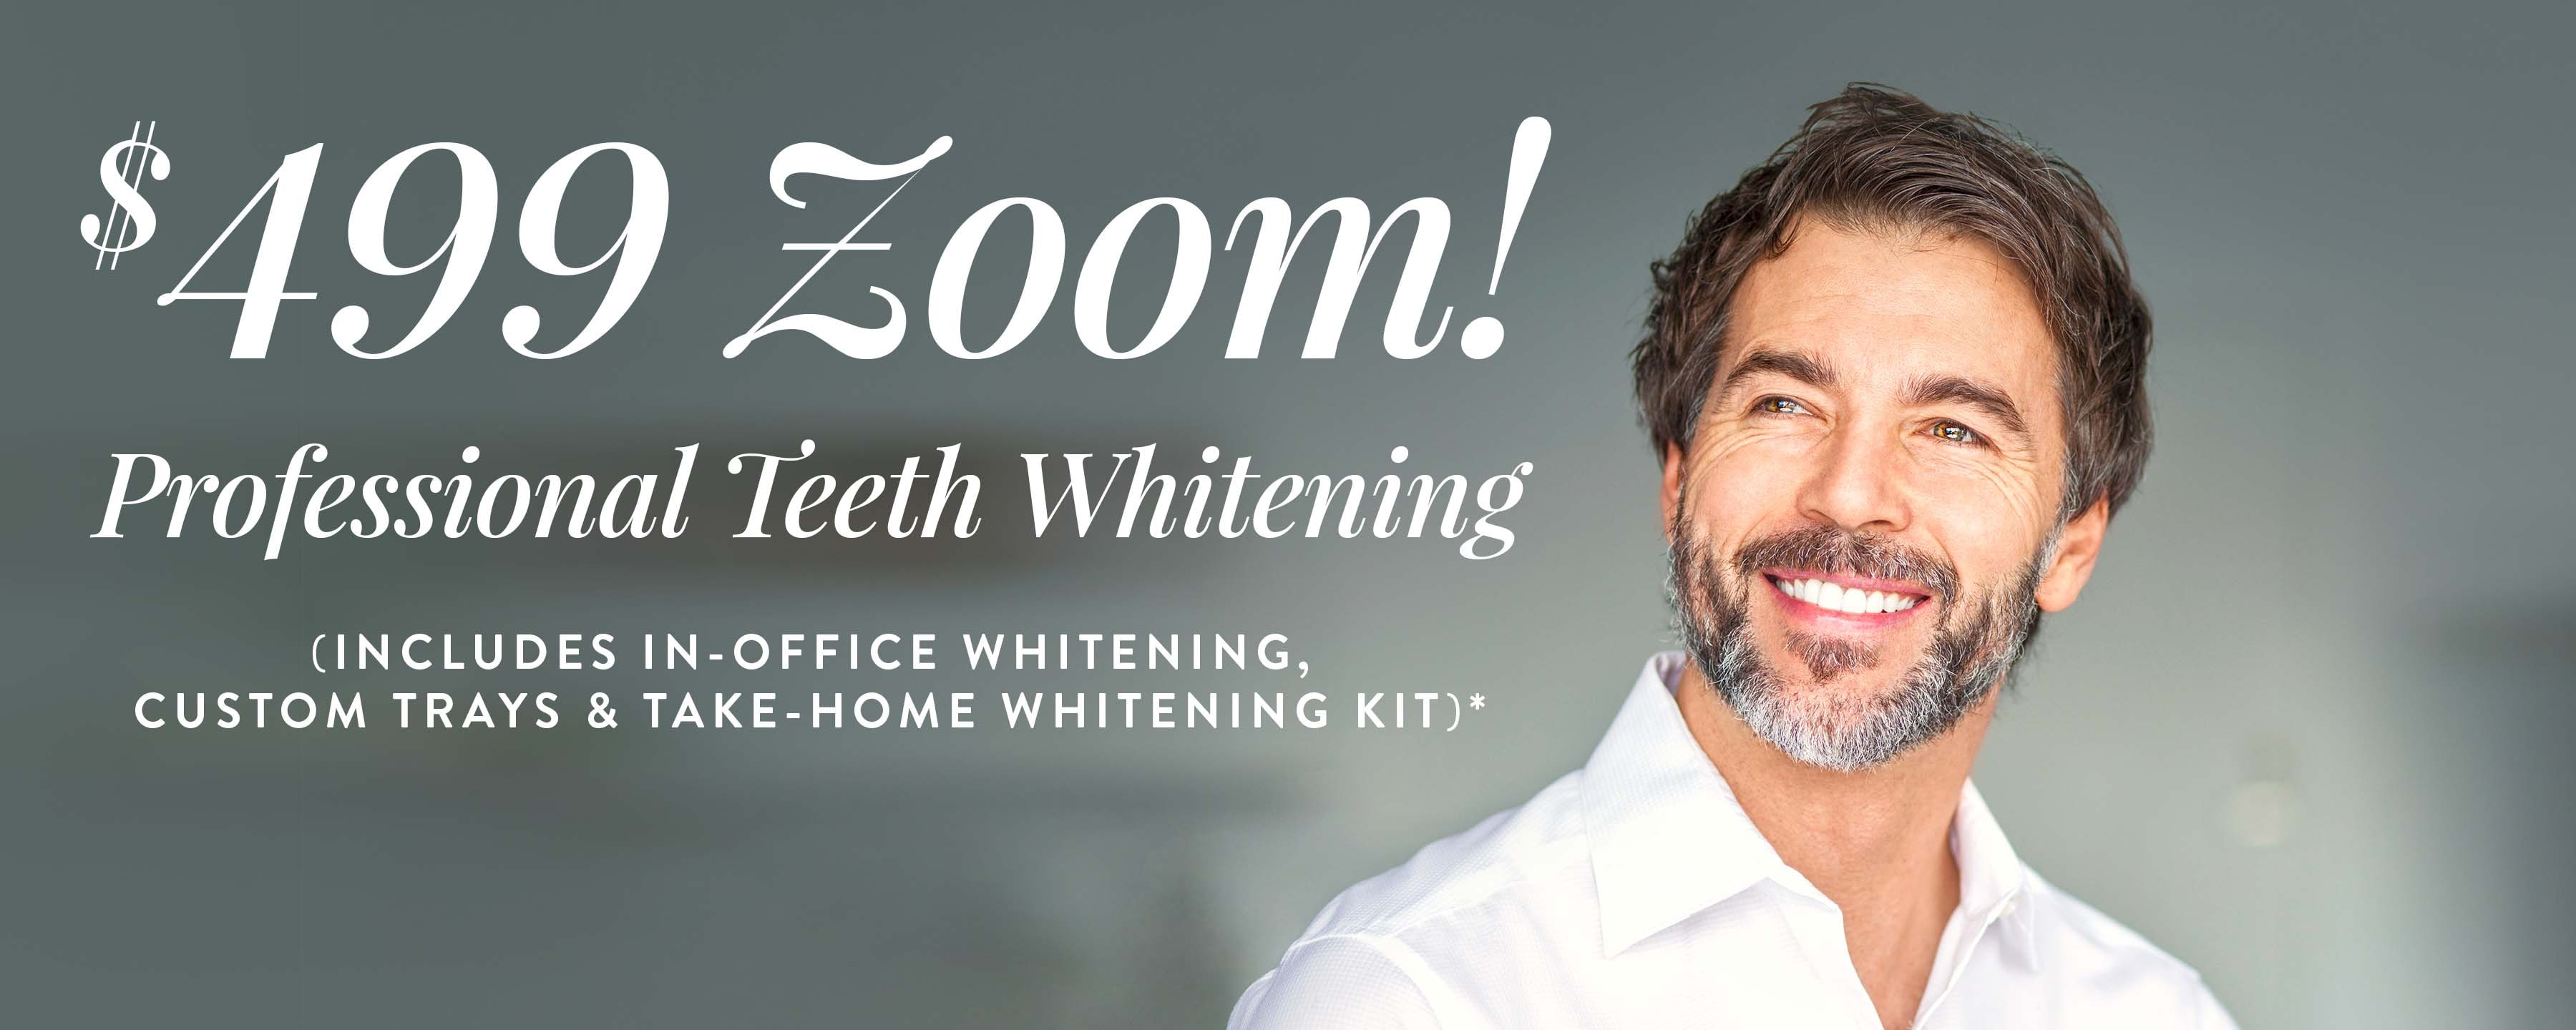 $499 Zoom Take Home Teeth Whitening Kit With Customized Trays*